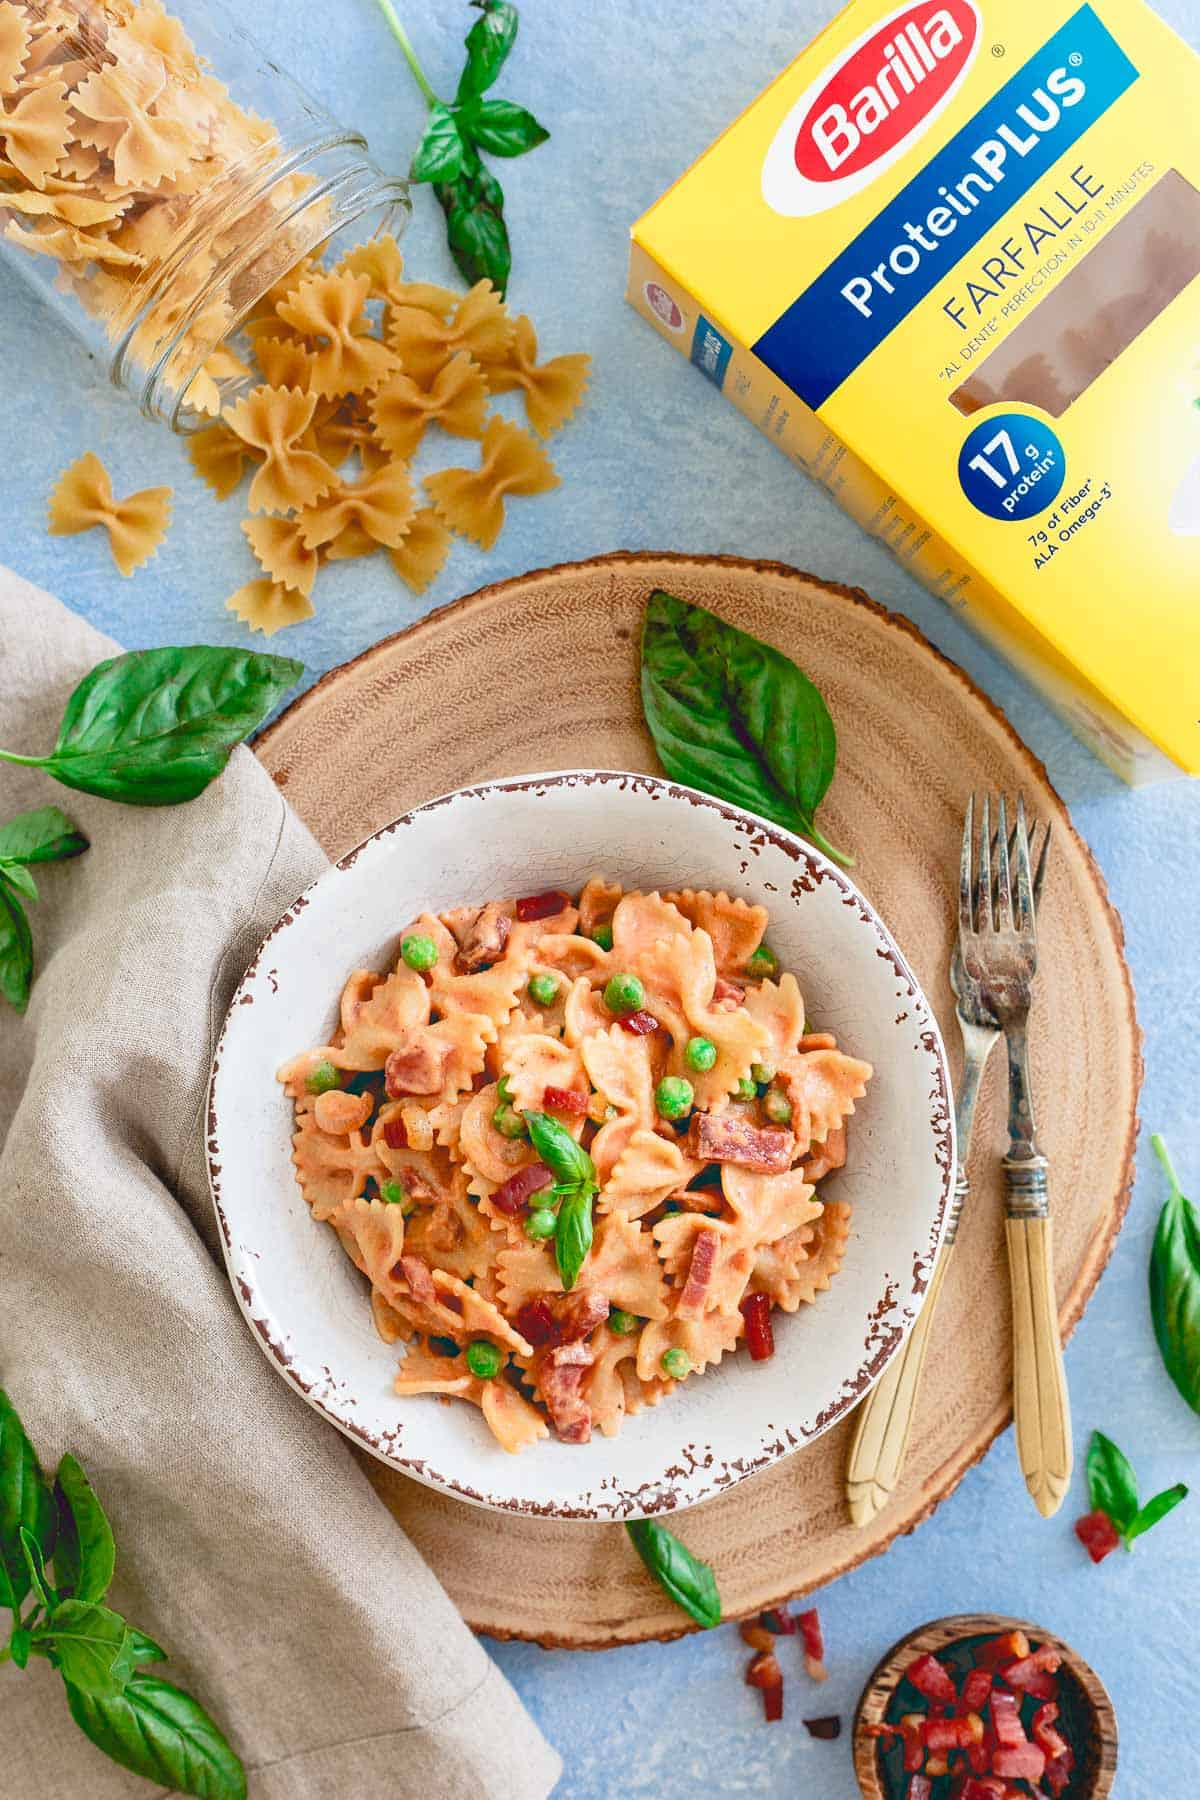 An easy healthier creamy tomato sauce is made in minutes in your blender in this protein packed pasta dish ready in just 20 minutes!